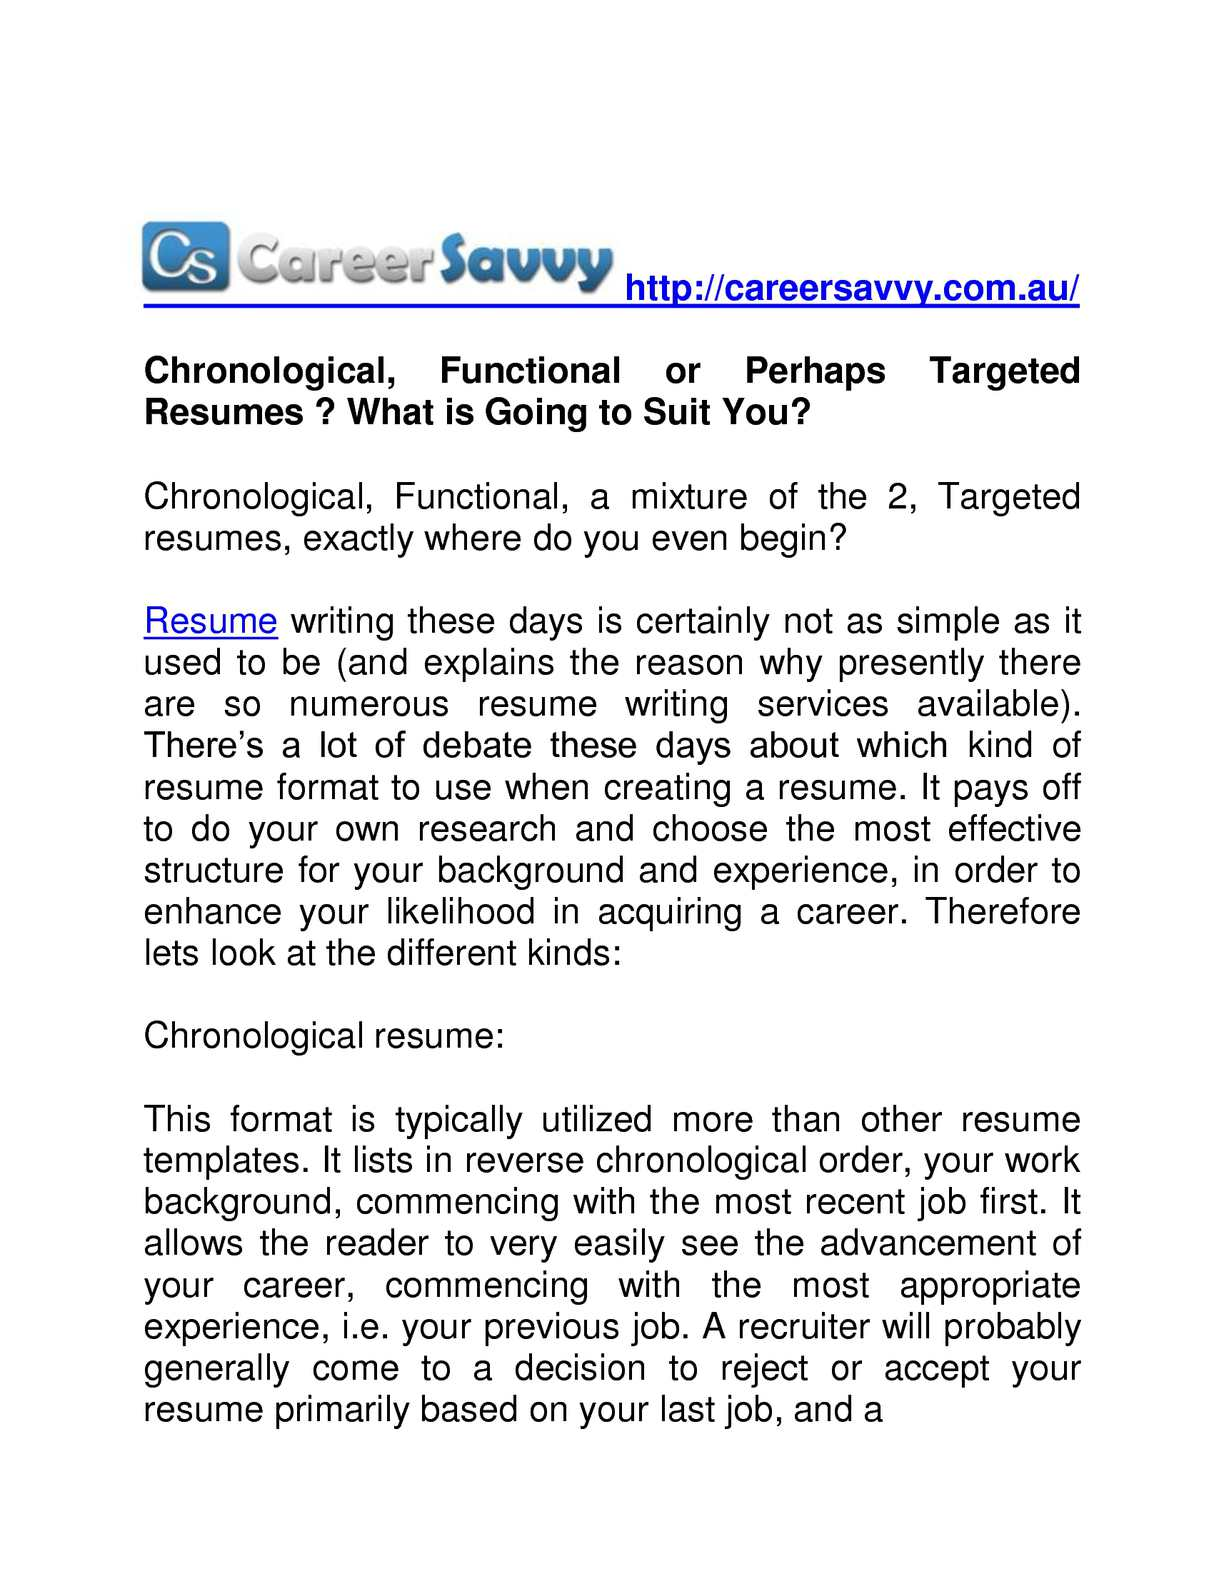 Calameo Chronological Functional Or Perhaps Targeted Resumes What